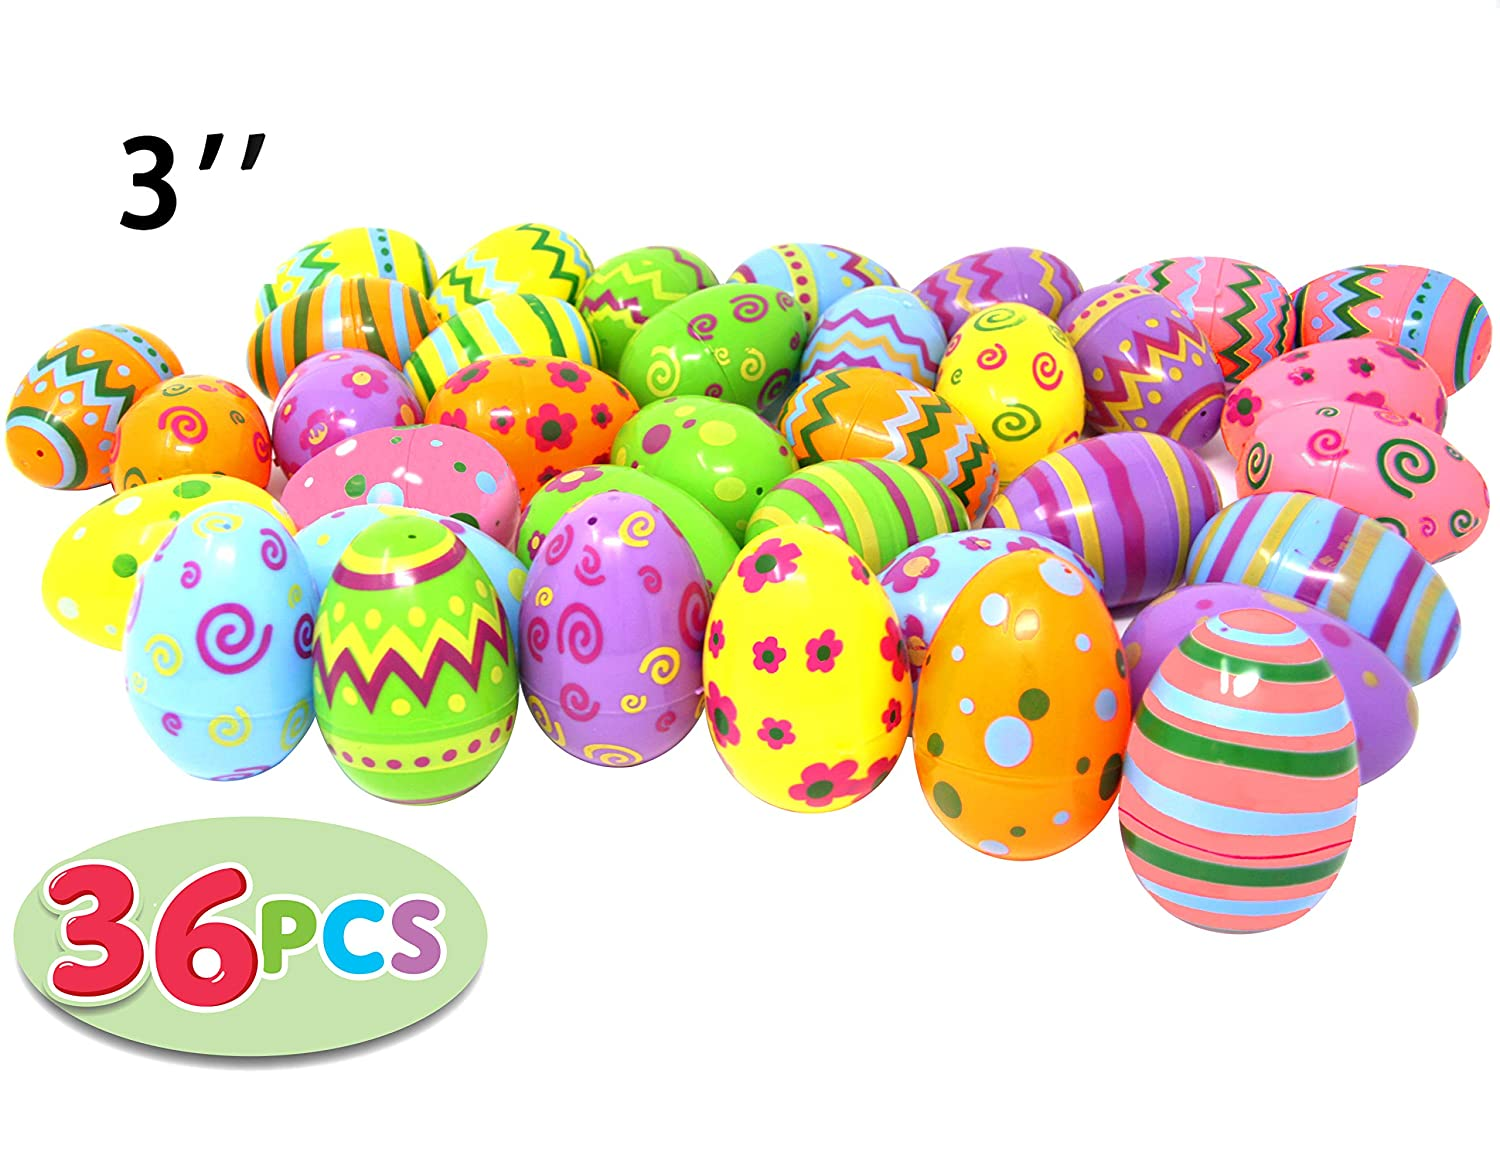 36 PCs Jumbo Plastic Printed Bright Easter Eggs, Over 3'' tall for Easter Hunt, Basket Stuffers Fillers, Classroom Prize Supplies, Filling Treats and Party Favor